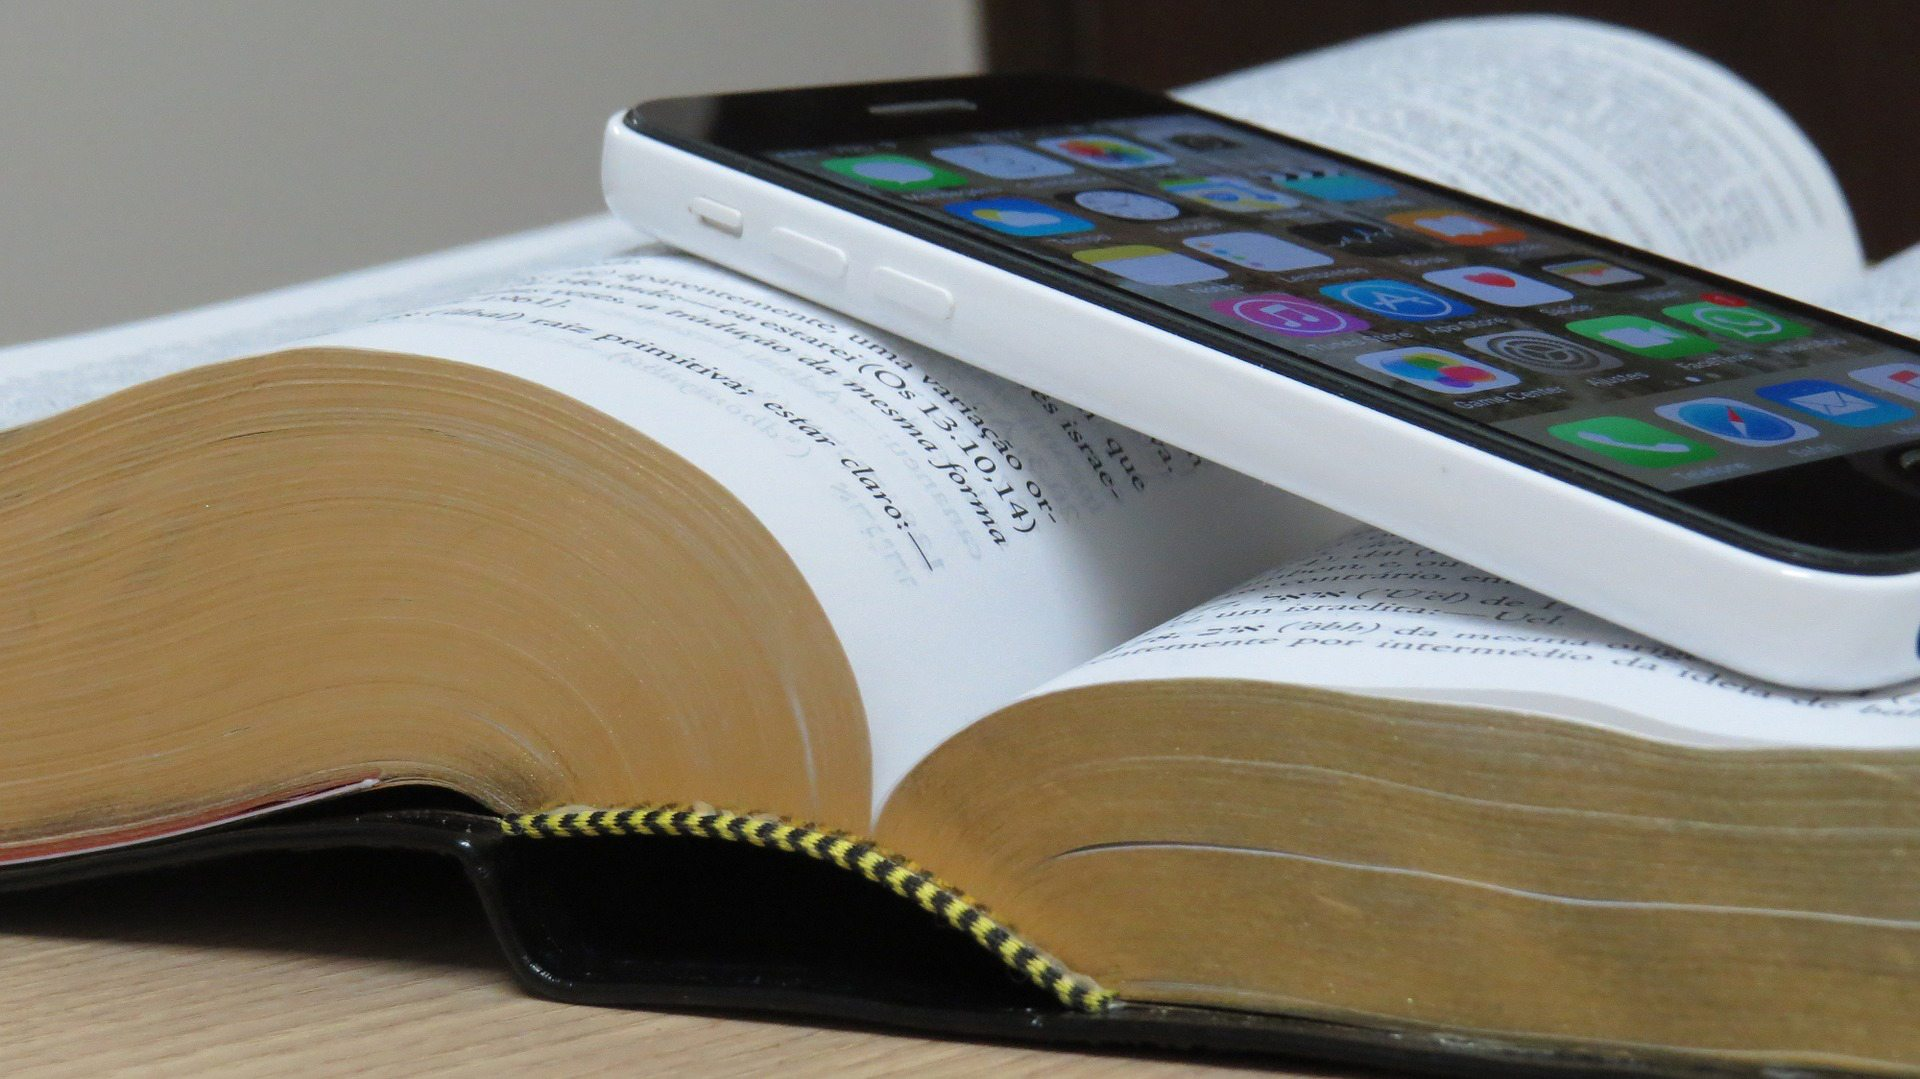 Bible and Smartphone